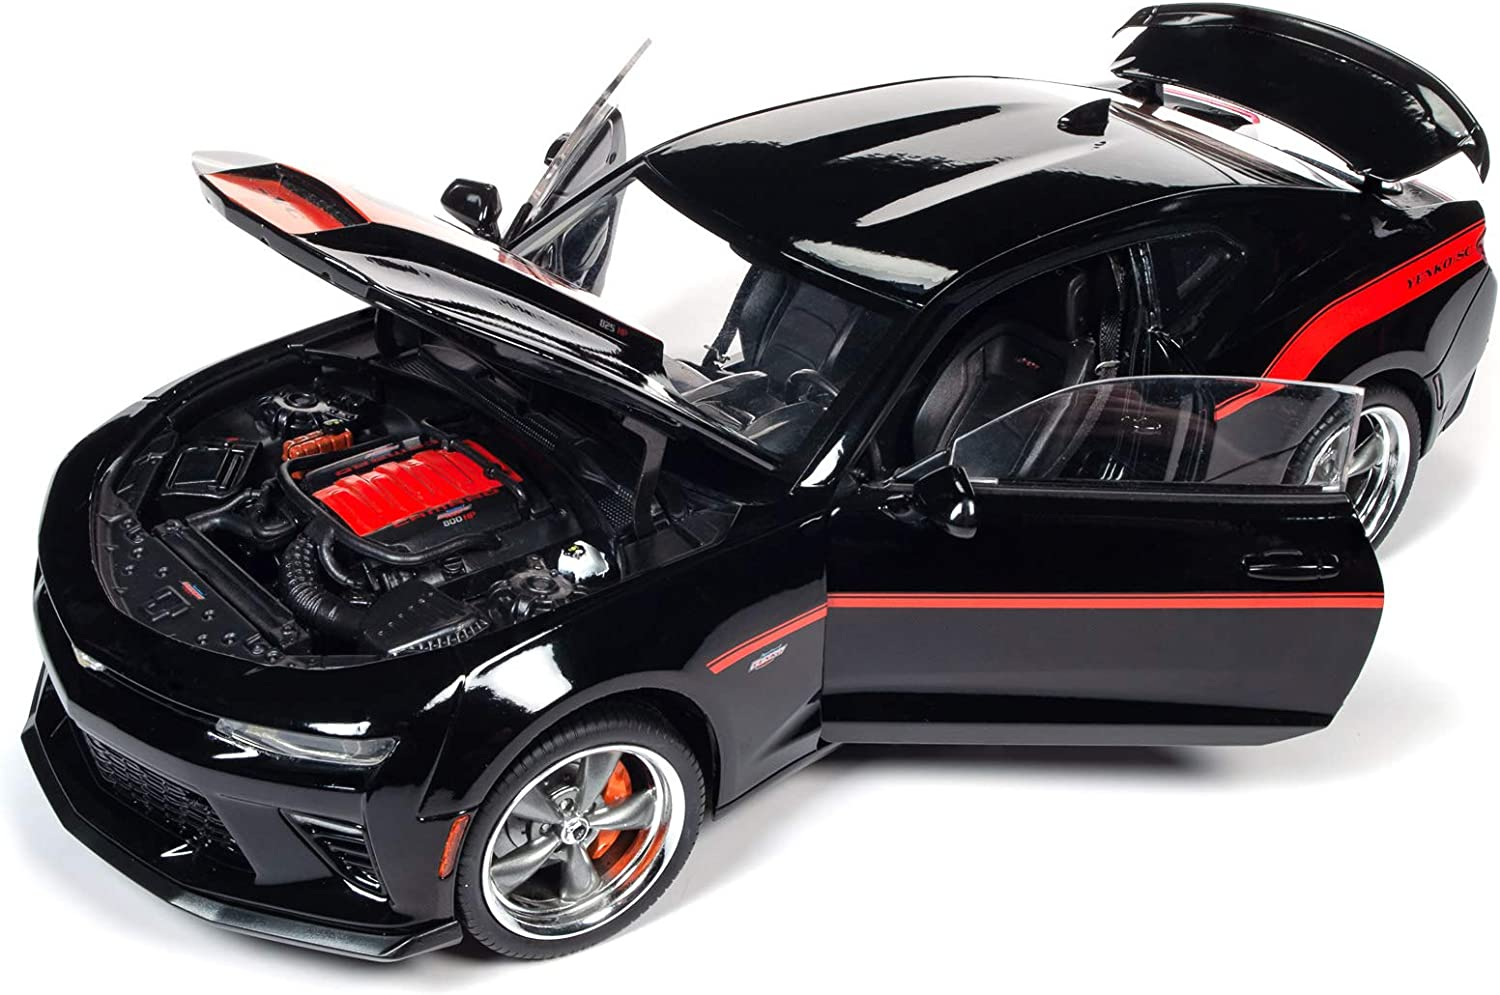 2018 Chevrolet Camaro Yenko/SC Stage I Coupe Black with Orange Stripes Limited Edition to 300 Pieces Worldwide 1/18 Diecast Car by Autoworld AW257